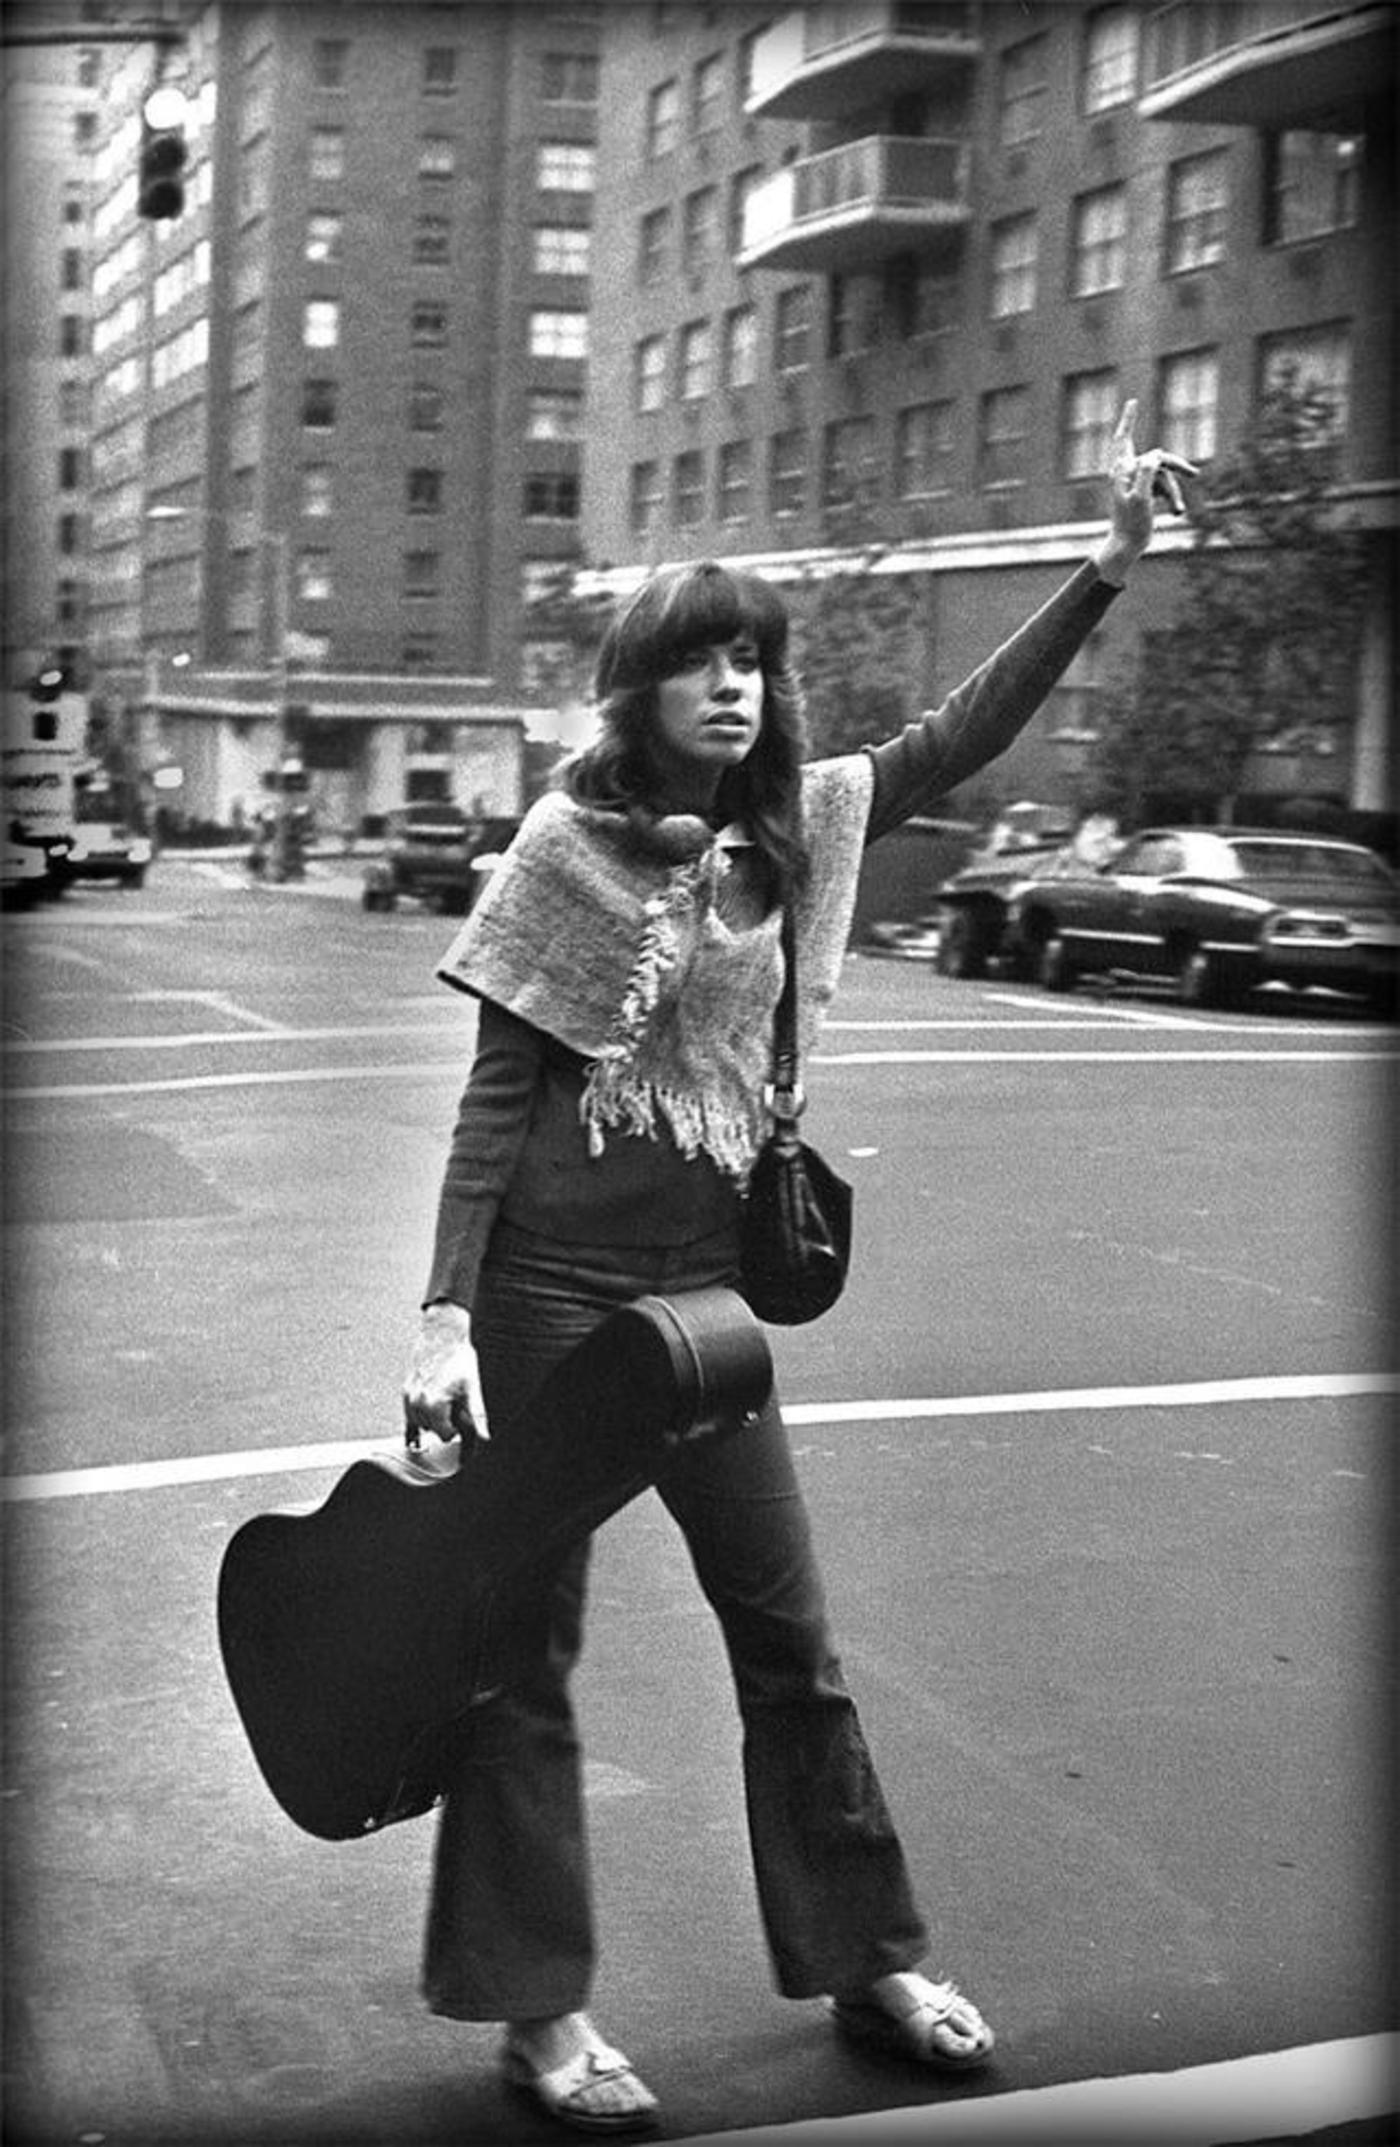 Carly Simon in Brooklyn with guitar in hand hailing cab